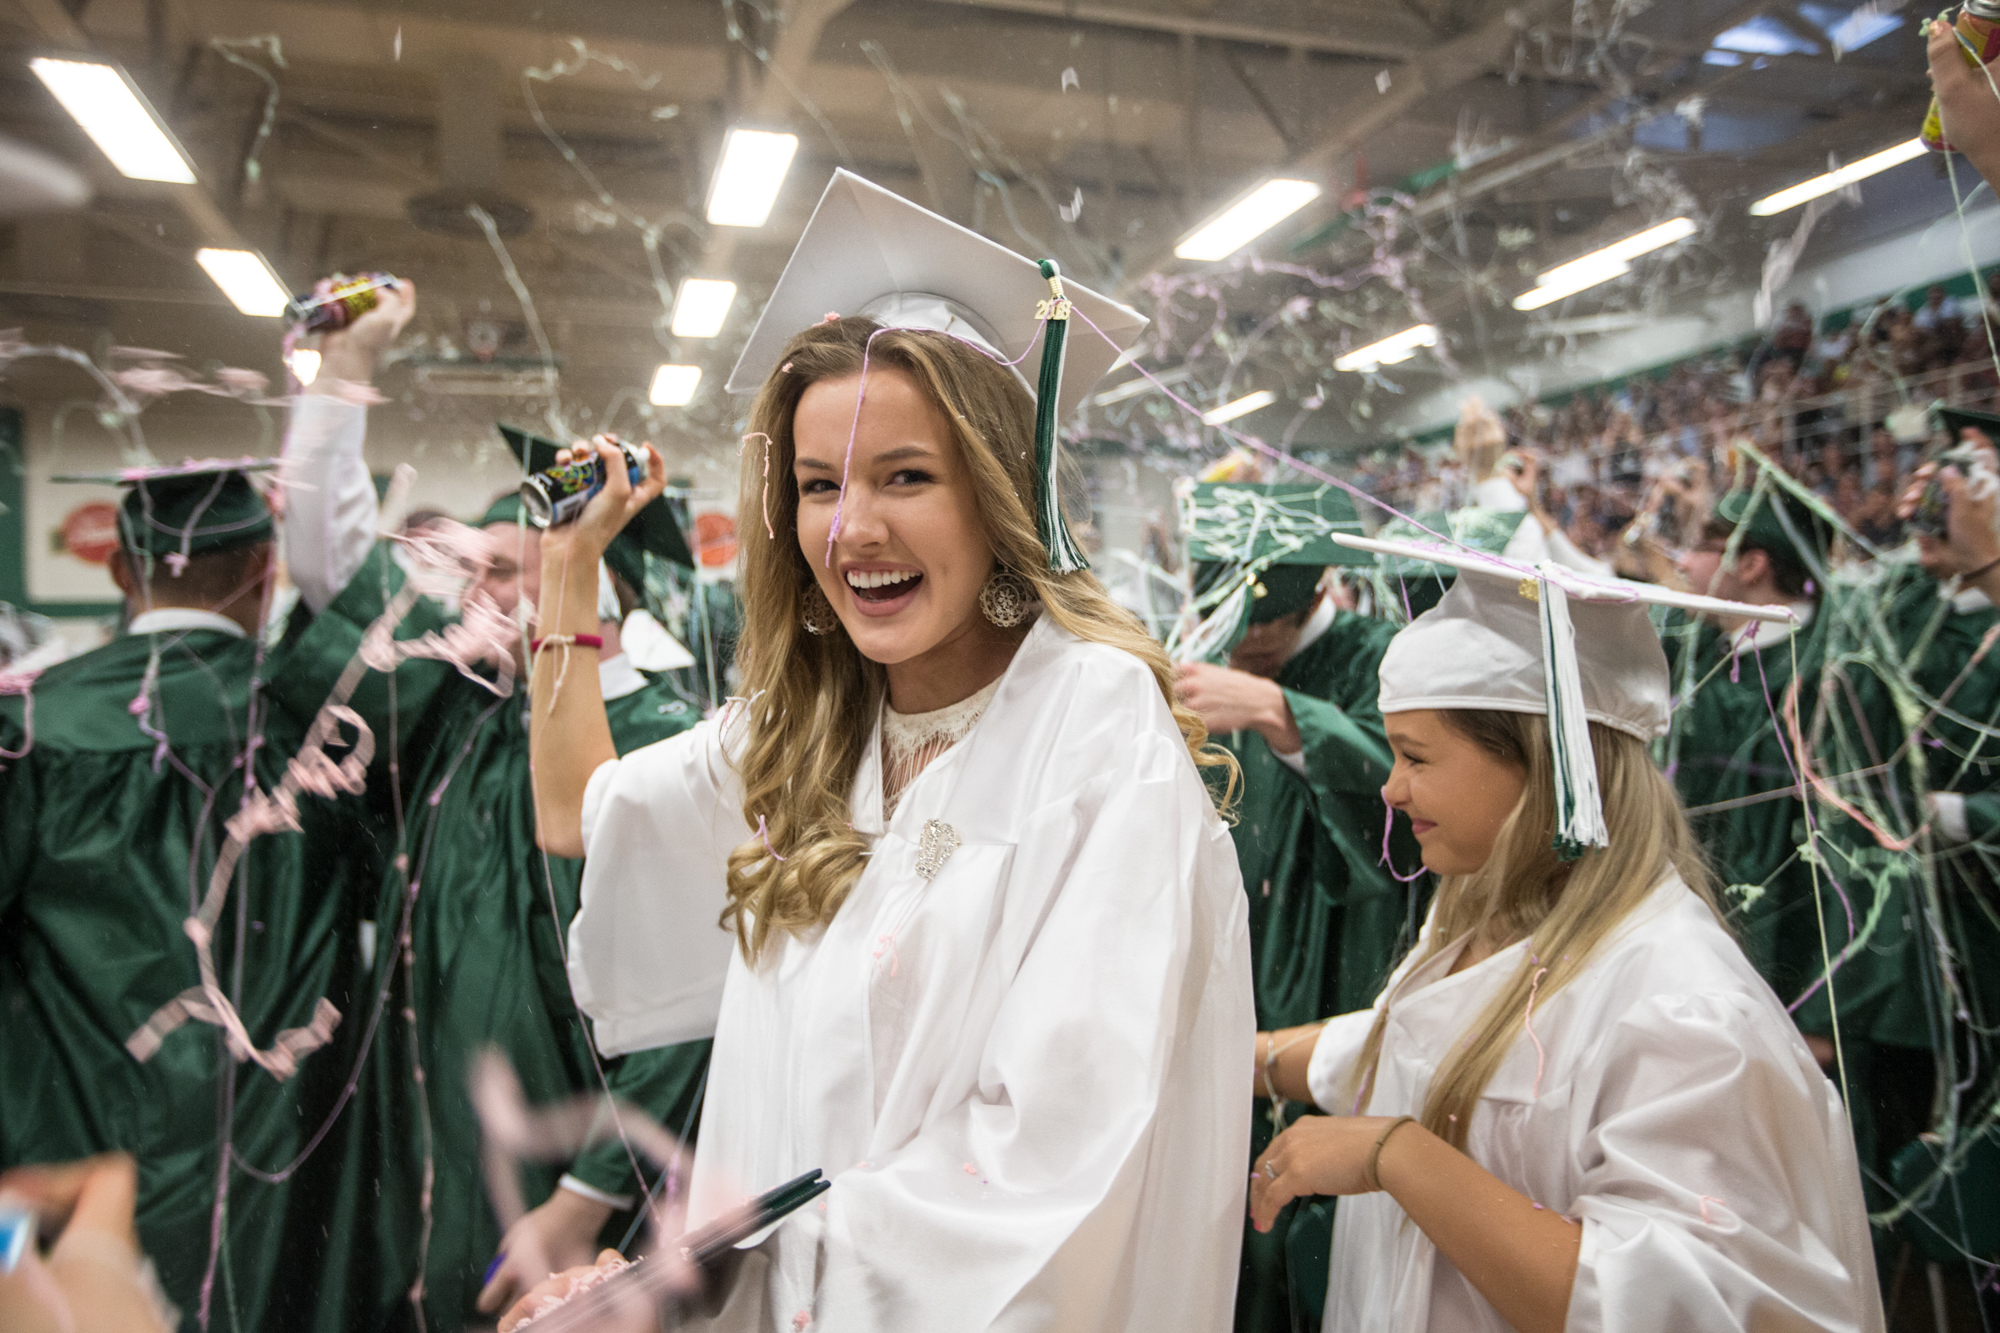 Lauren Clemens reacts after graduates sprayed Goofy String in the air as Boylan Catholic High School celebrates its commencement on Friday, May 25, 2018, at Boylan Catholic High School in Rockford.